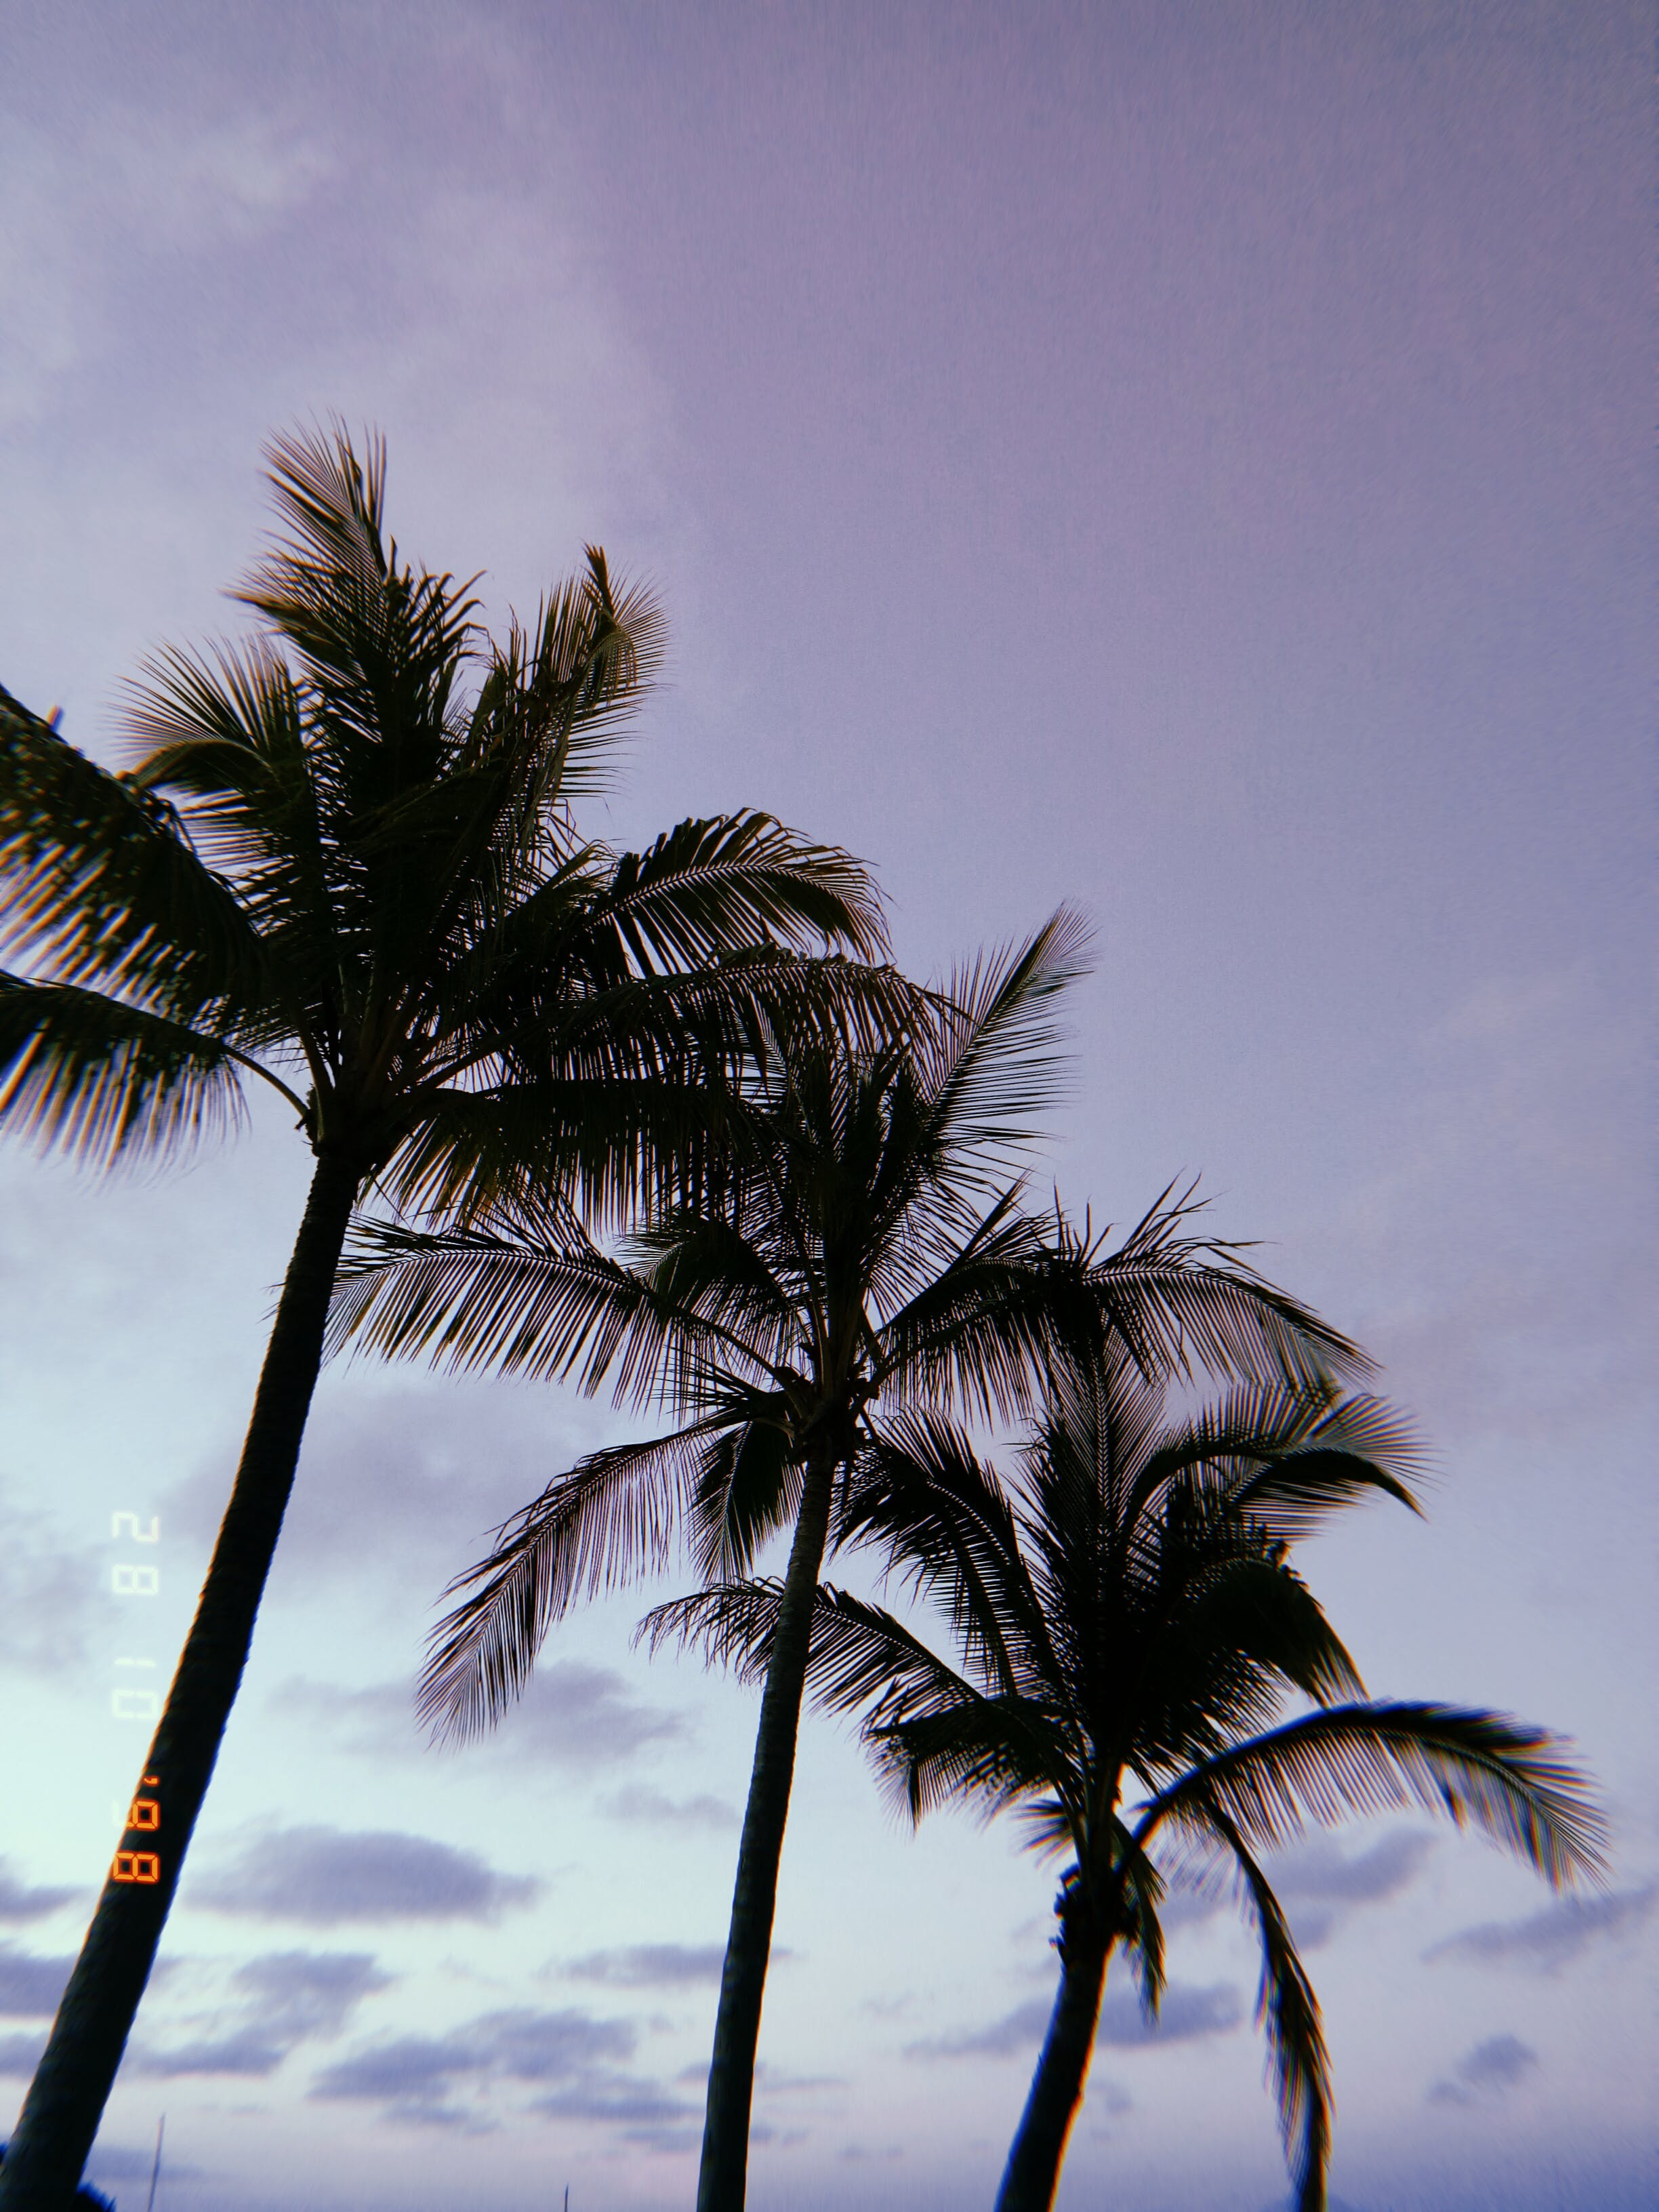 Free stock photo of blue sky, clouds, palm trees, palms